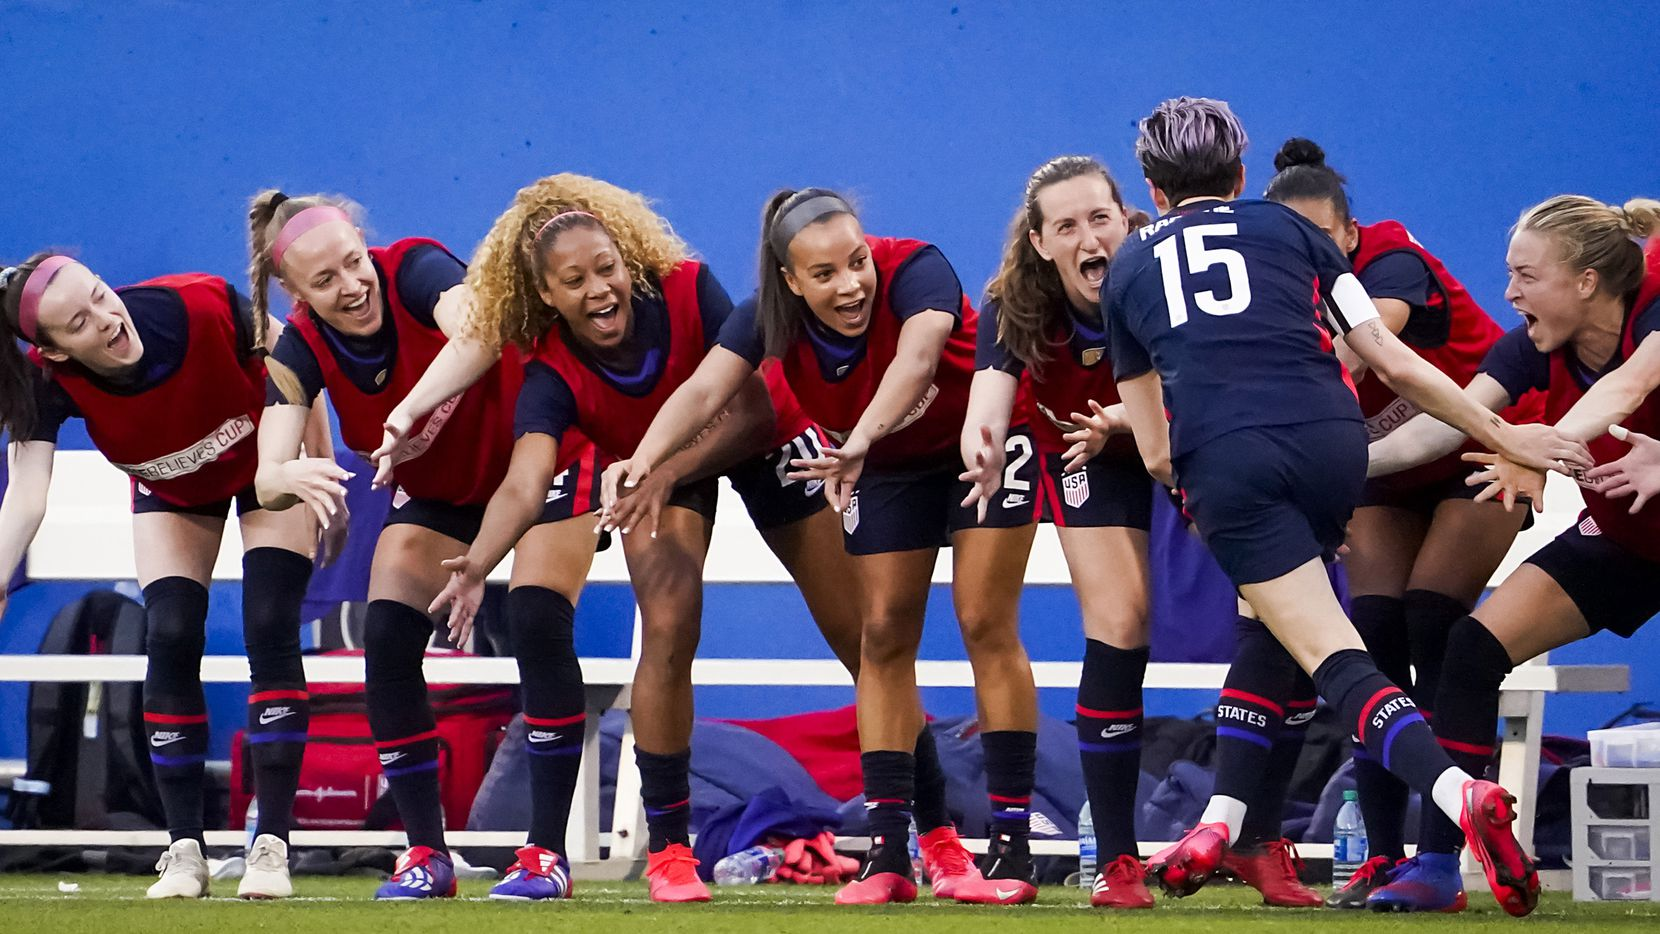 USA forward Megan Rapinoe celebrates with teamates after scoring on a penalty kick during the first half of a SheBelieves Cup soccer game against Japan on Wednesday, March 11, 2020, in Frisco, Texas.